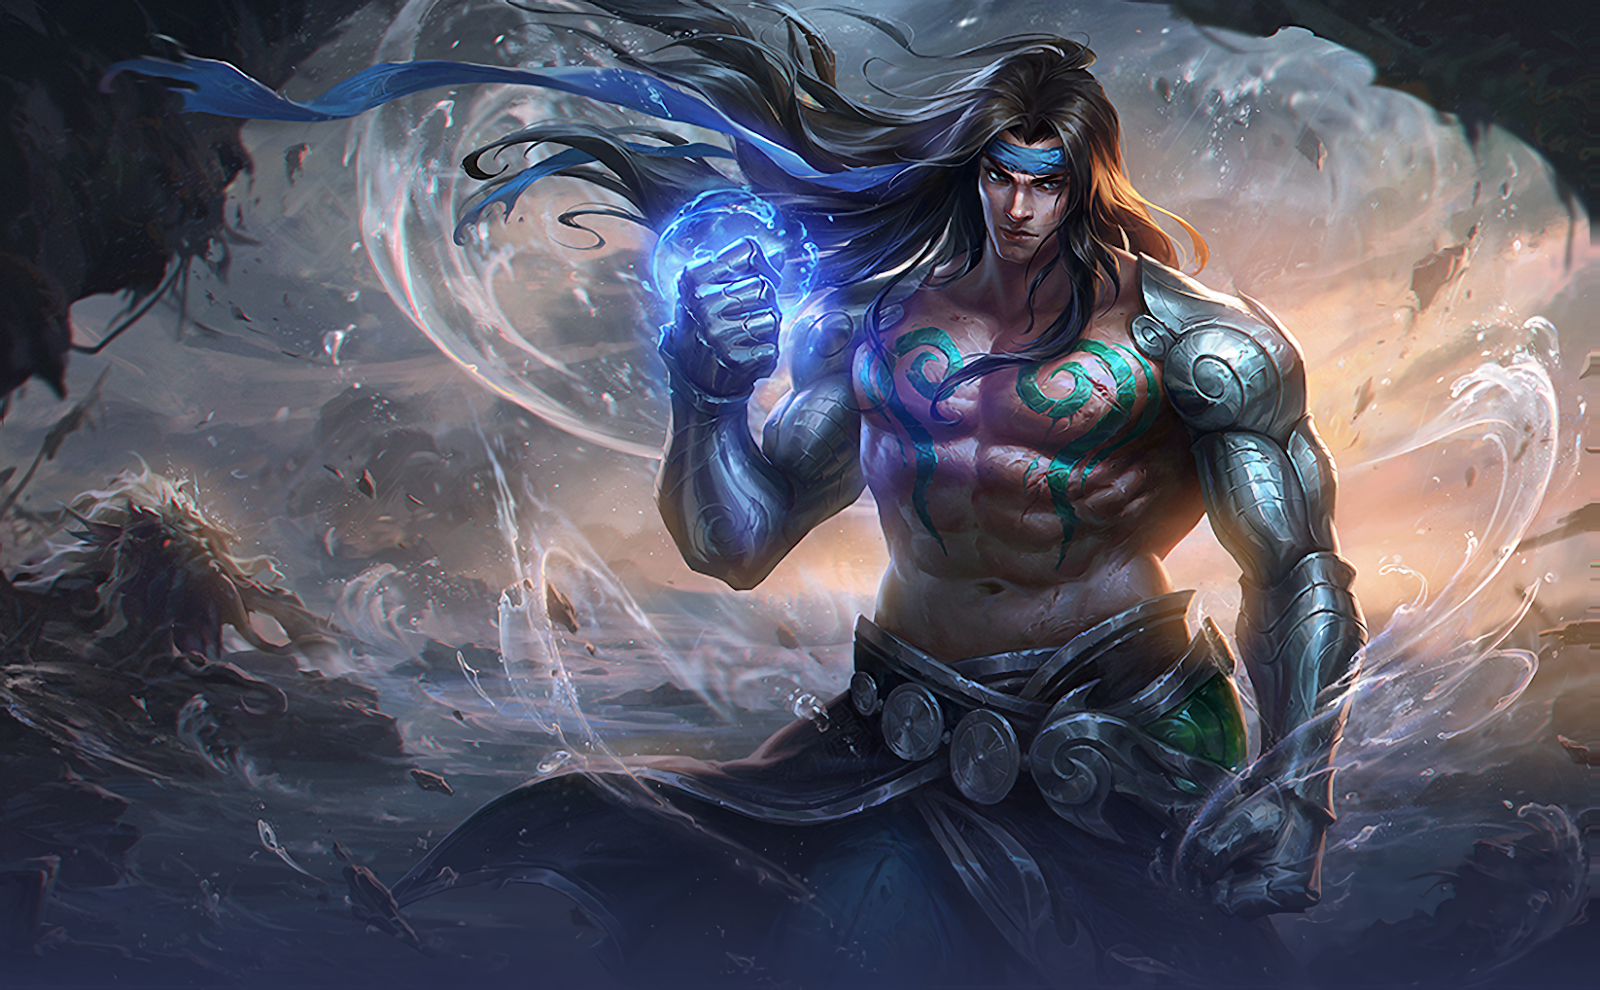 Mobile Legend Wallpapers - Top Free Mobile Legend ...